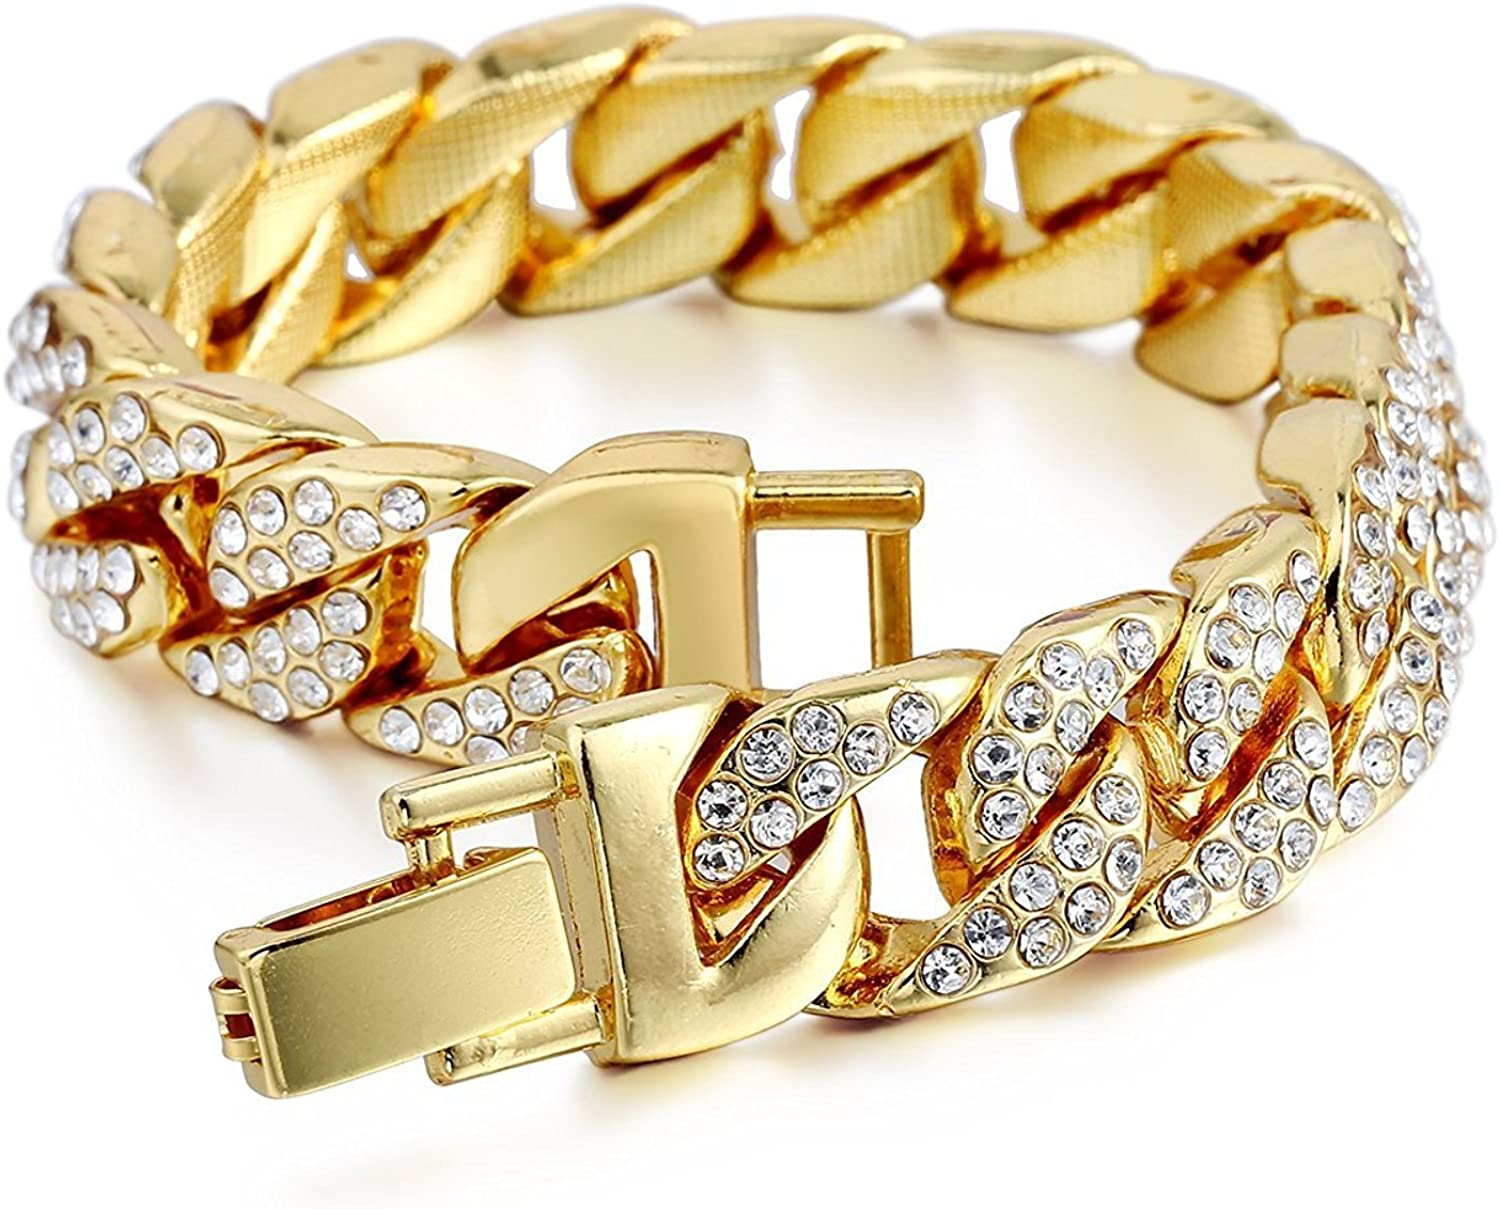 Aiyo Nice Mens Womens Cuban Link Bracelet Hip Hop Bracelet Stainless Steel Chain Bracelet Iced Out Curb Cuban 18k Gold Plated Bracelet with Clear Rhinestones